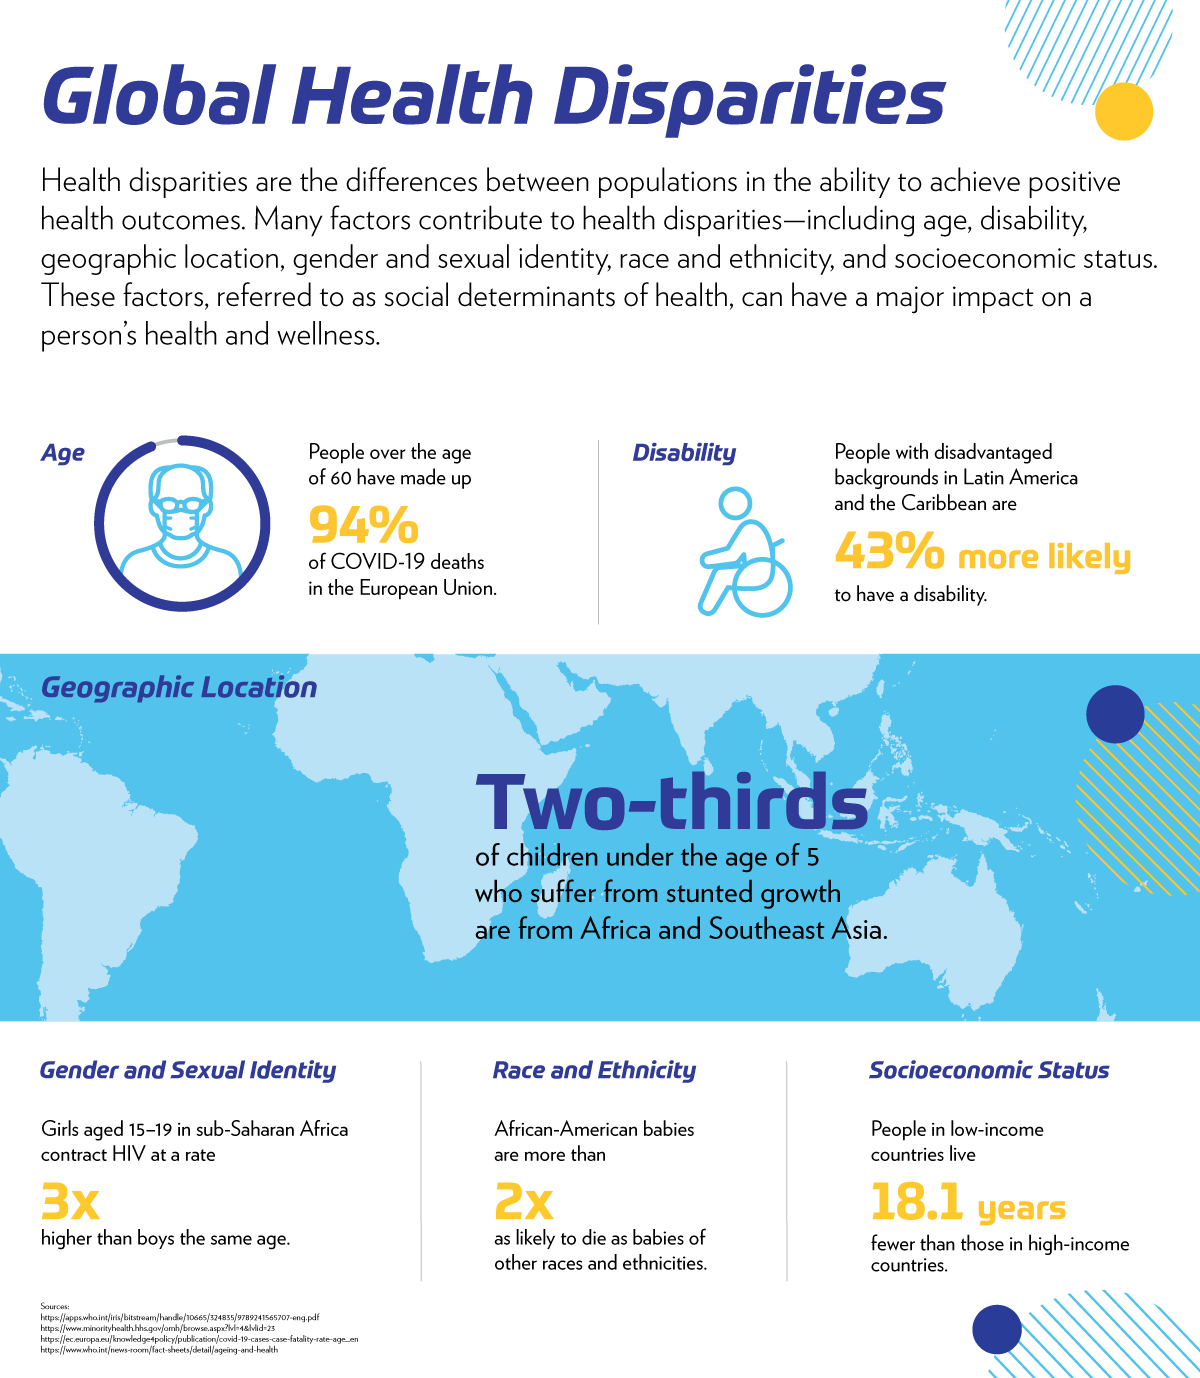 Infographic showing the health disparities among global populations